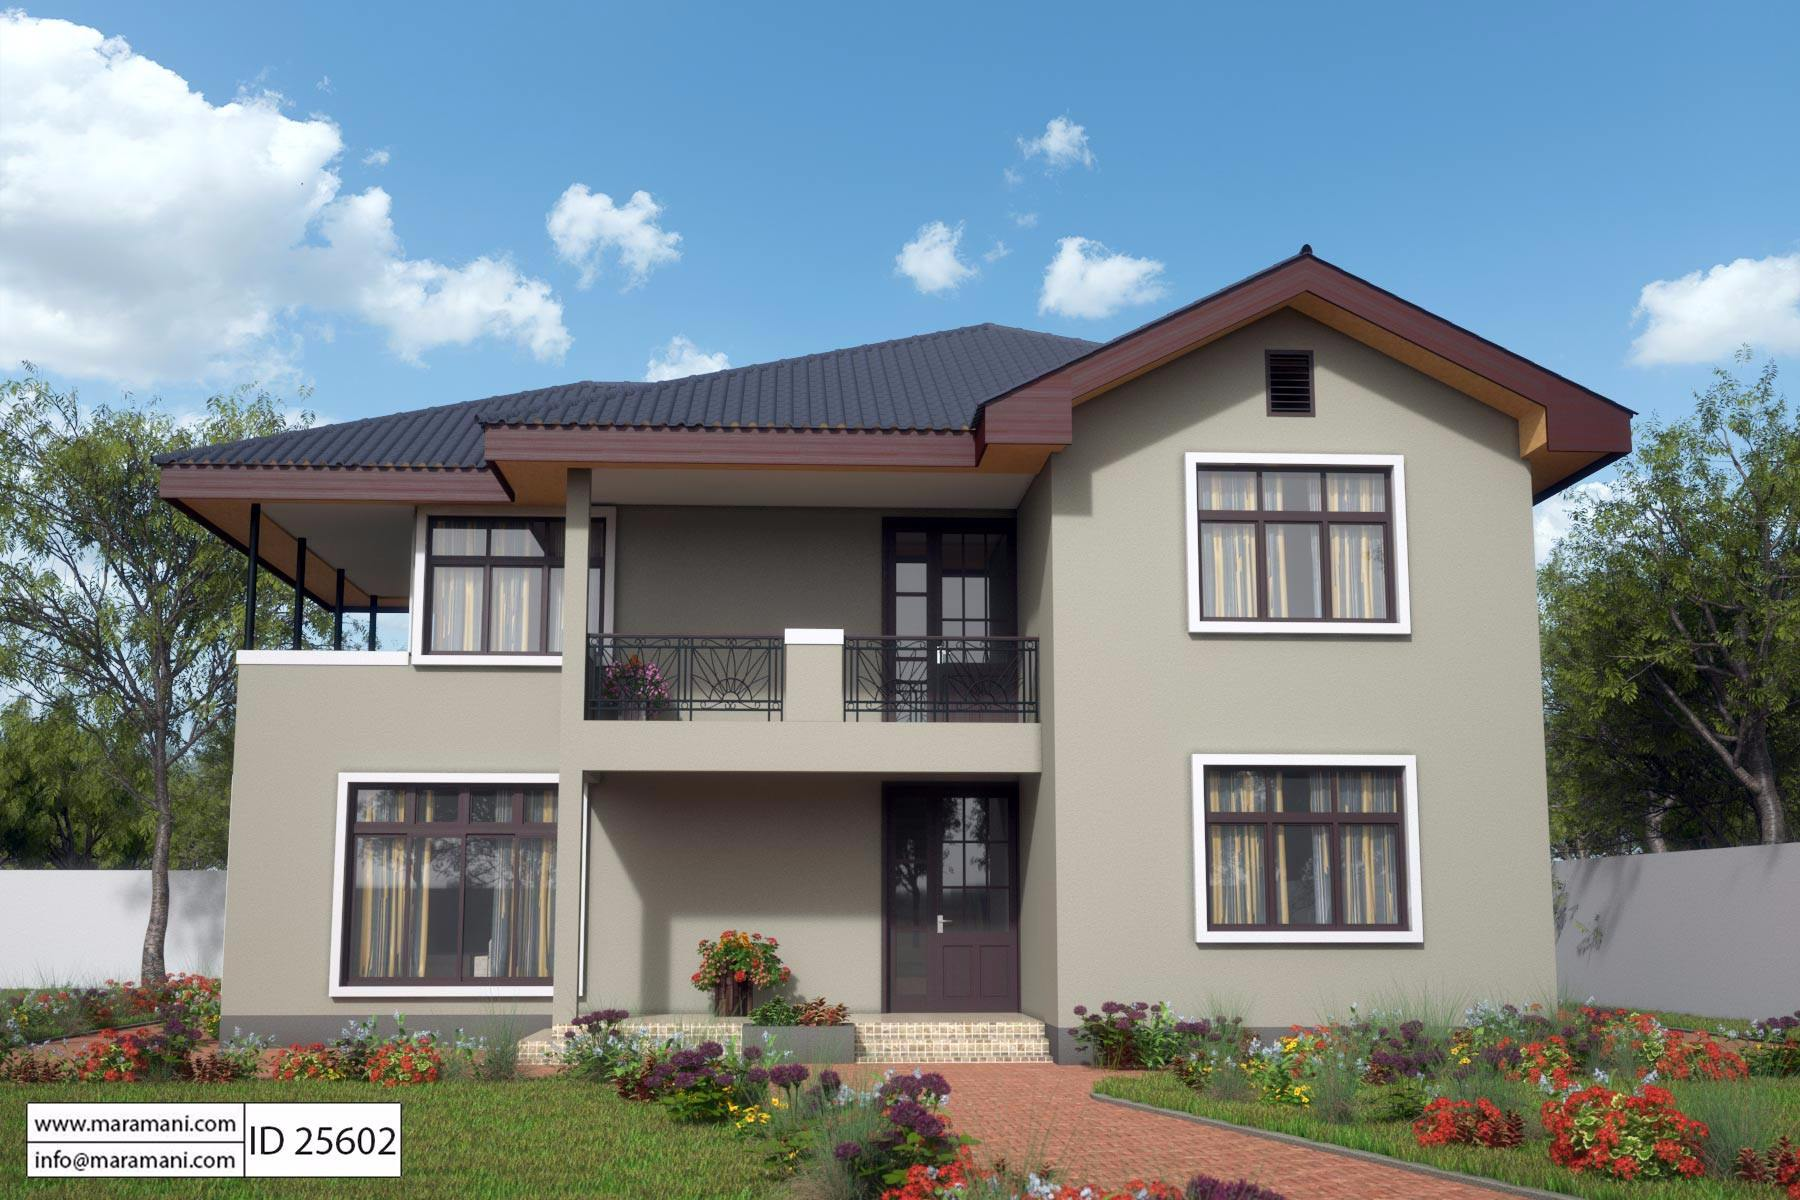 5 bedroom house design id 25602 house plans by maramani for 8 bedroom homes